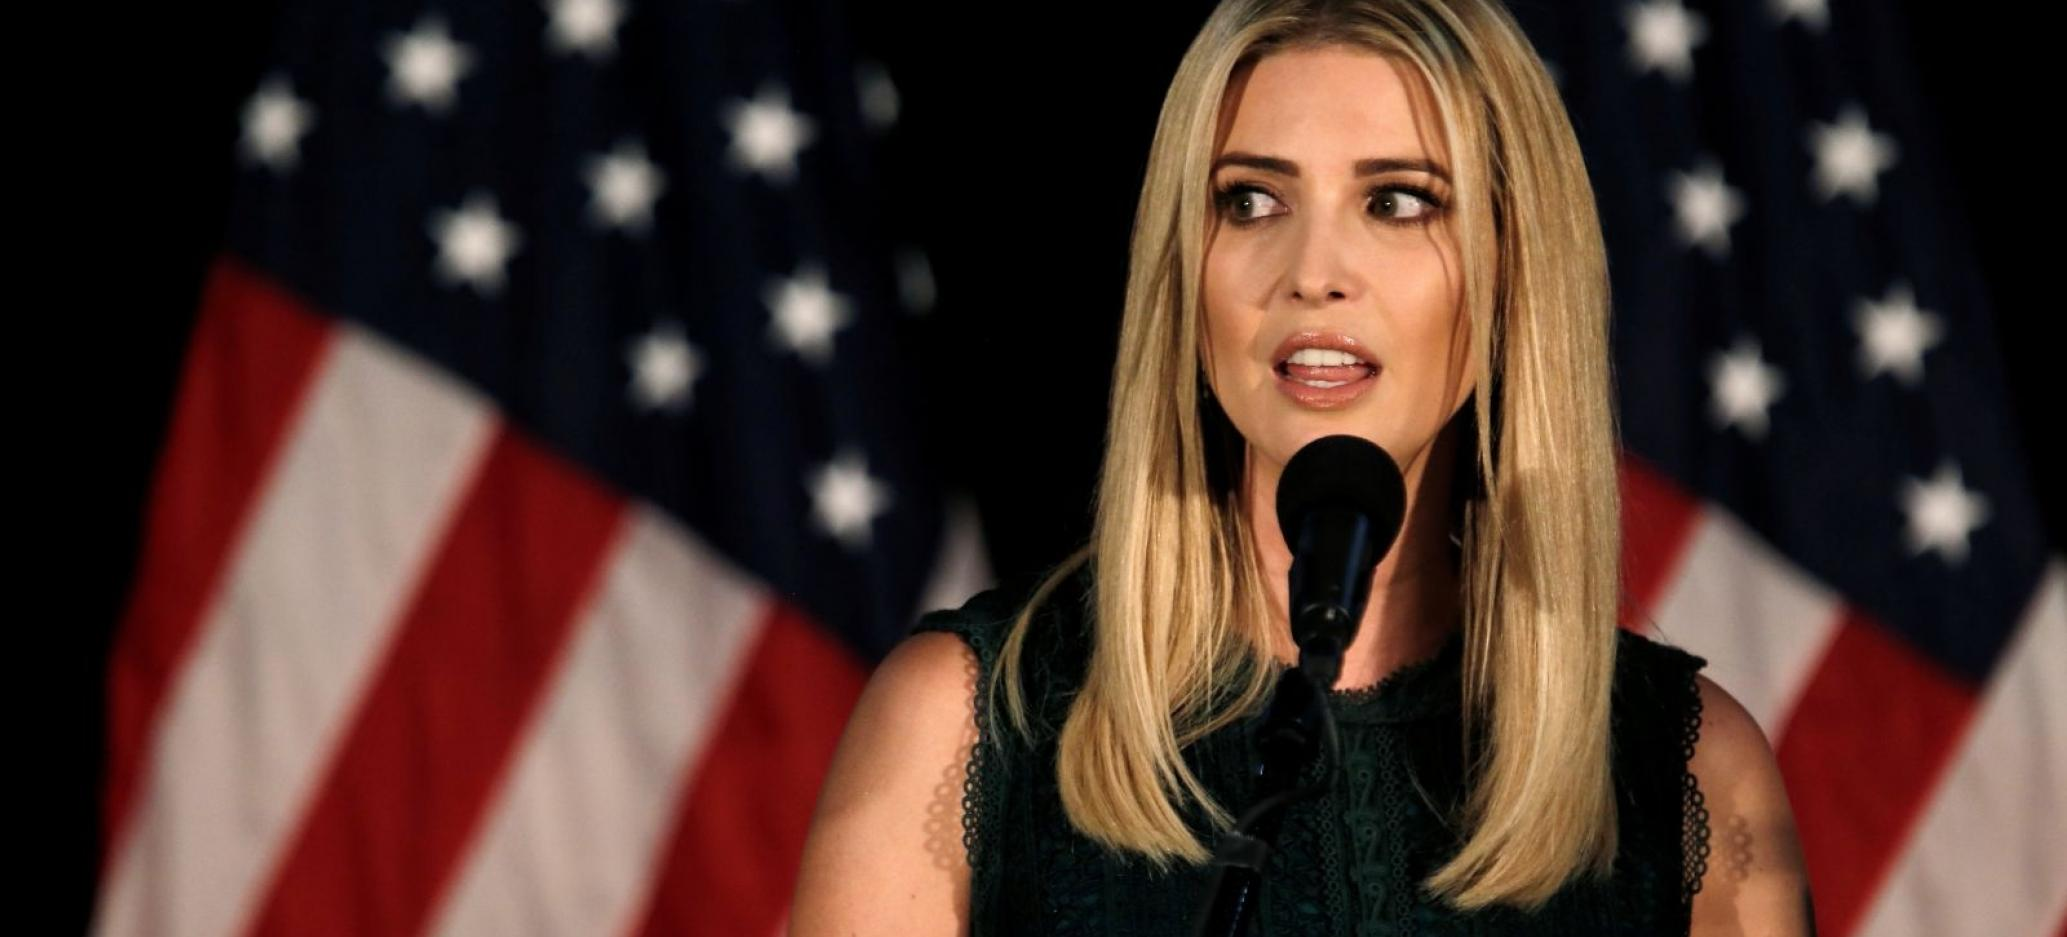 Ivanka Trump is Now Working in the White House, But NOT As a Government Employee